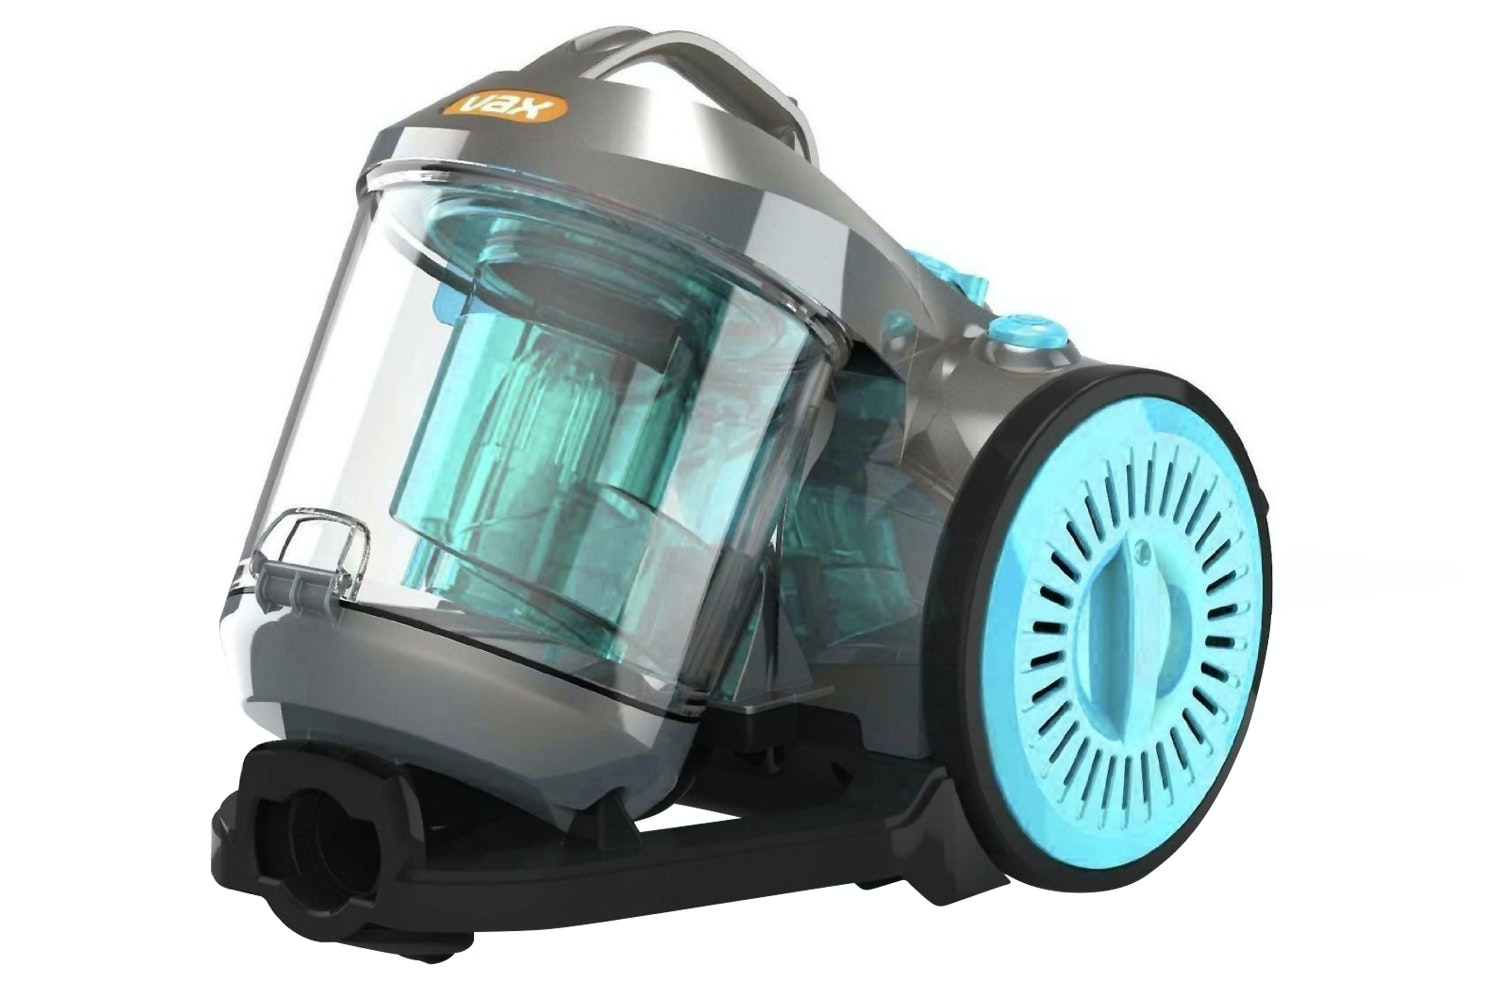 Vax Power 3 Pet Bagless Vacuum Cleaner | AWC02